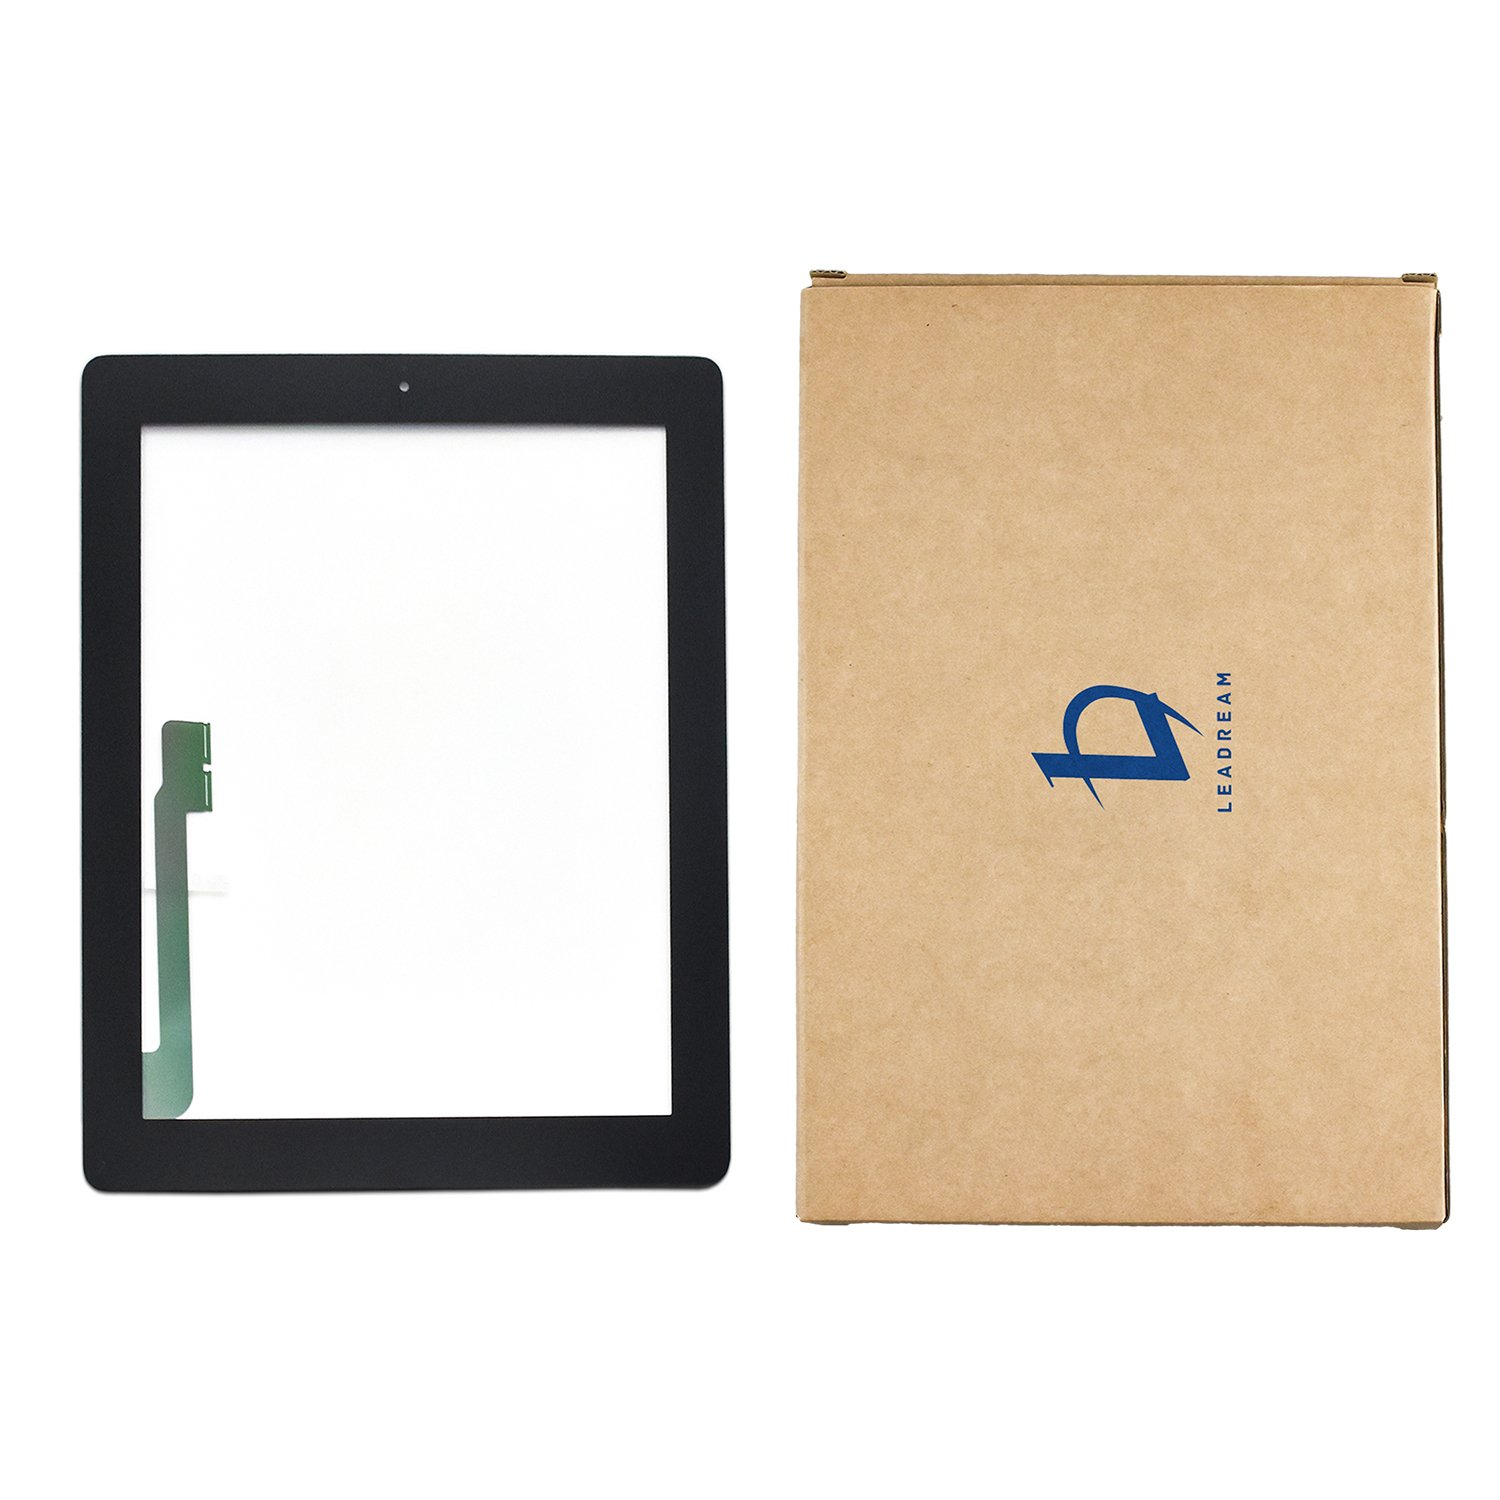 Black Touch Screen Digitizer Assembled with Home Button Strong Adhesive for iPad 3 3rd Generation A1416 A1403 A1430